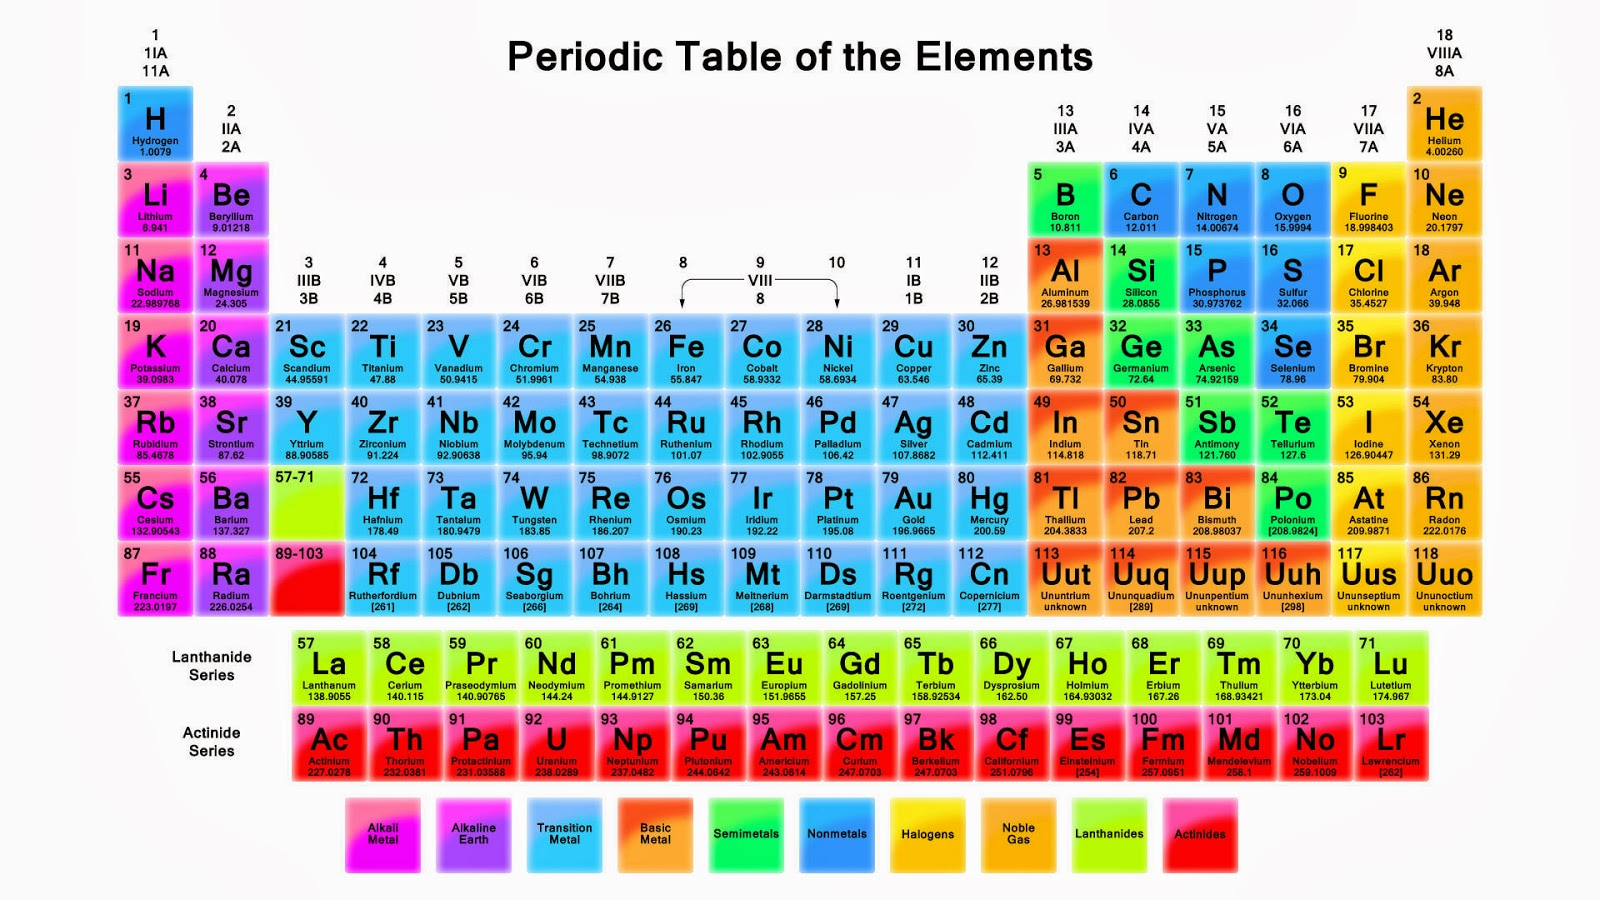 history of the periodic table of The evolution of the periodic system from its origins some 200 years ago, the periodic table has become a vital tool for modern chemists  throughout its long history, the periodic table has.